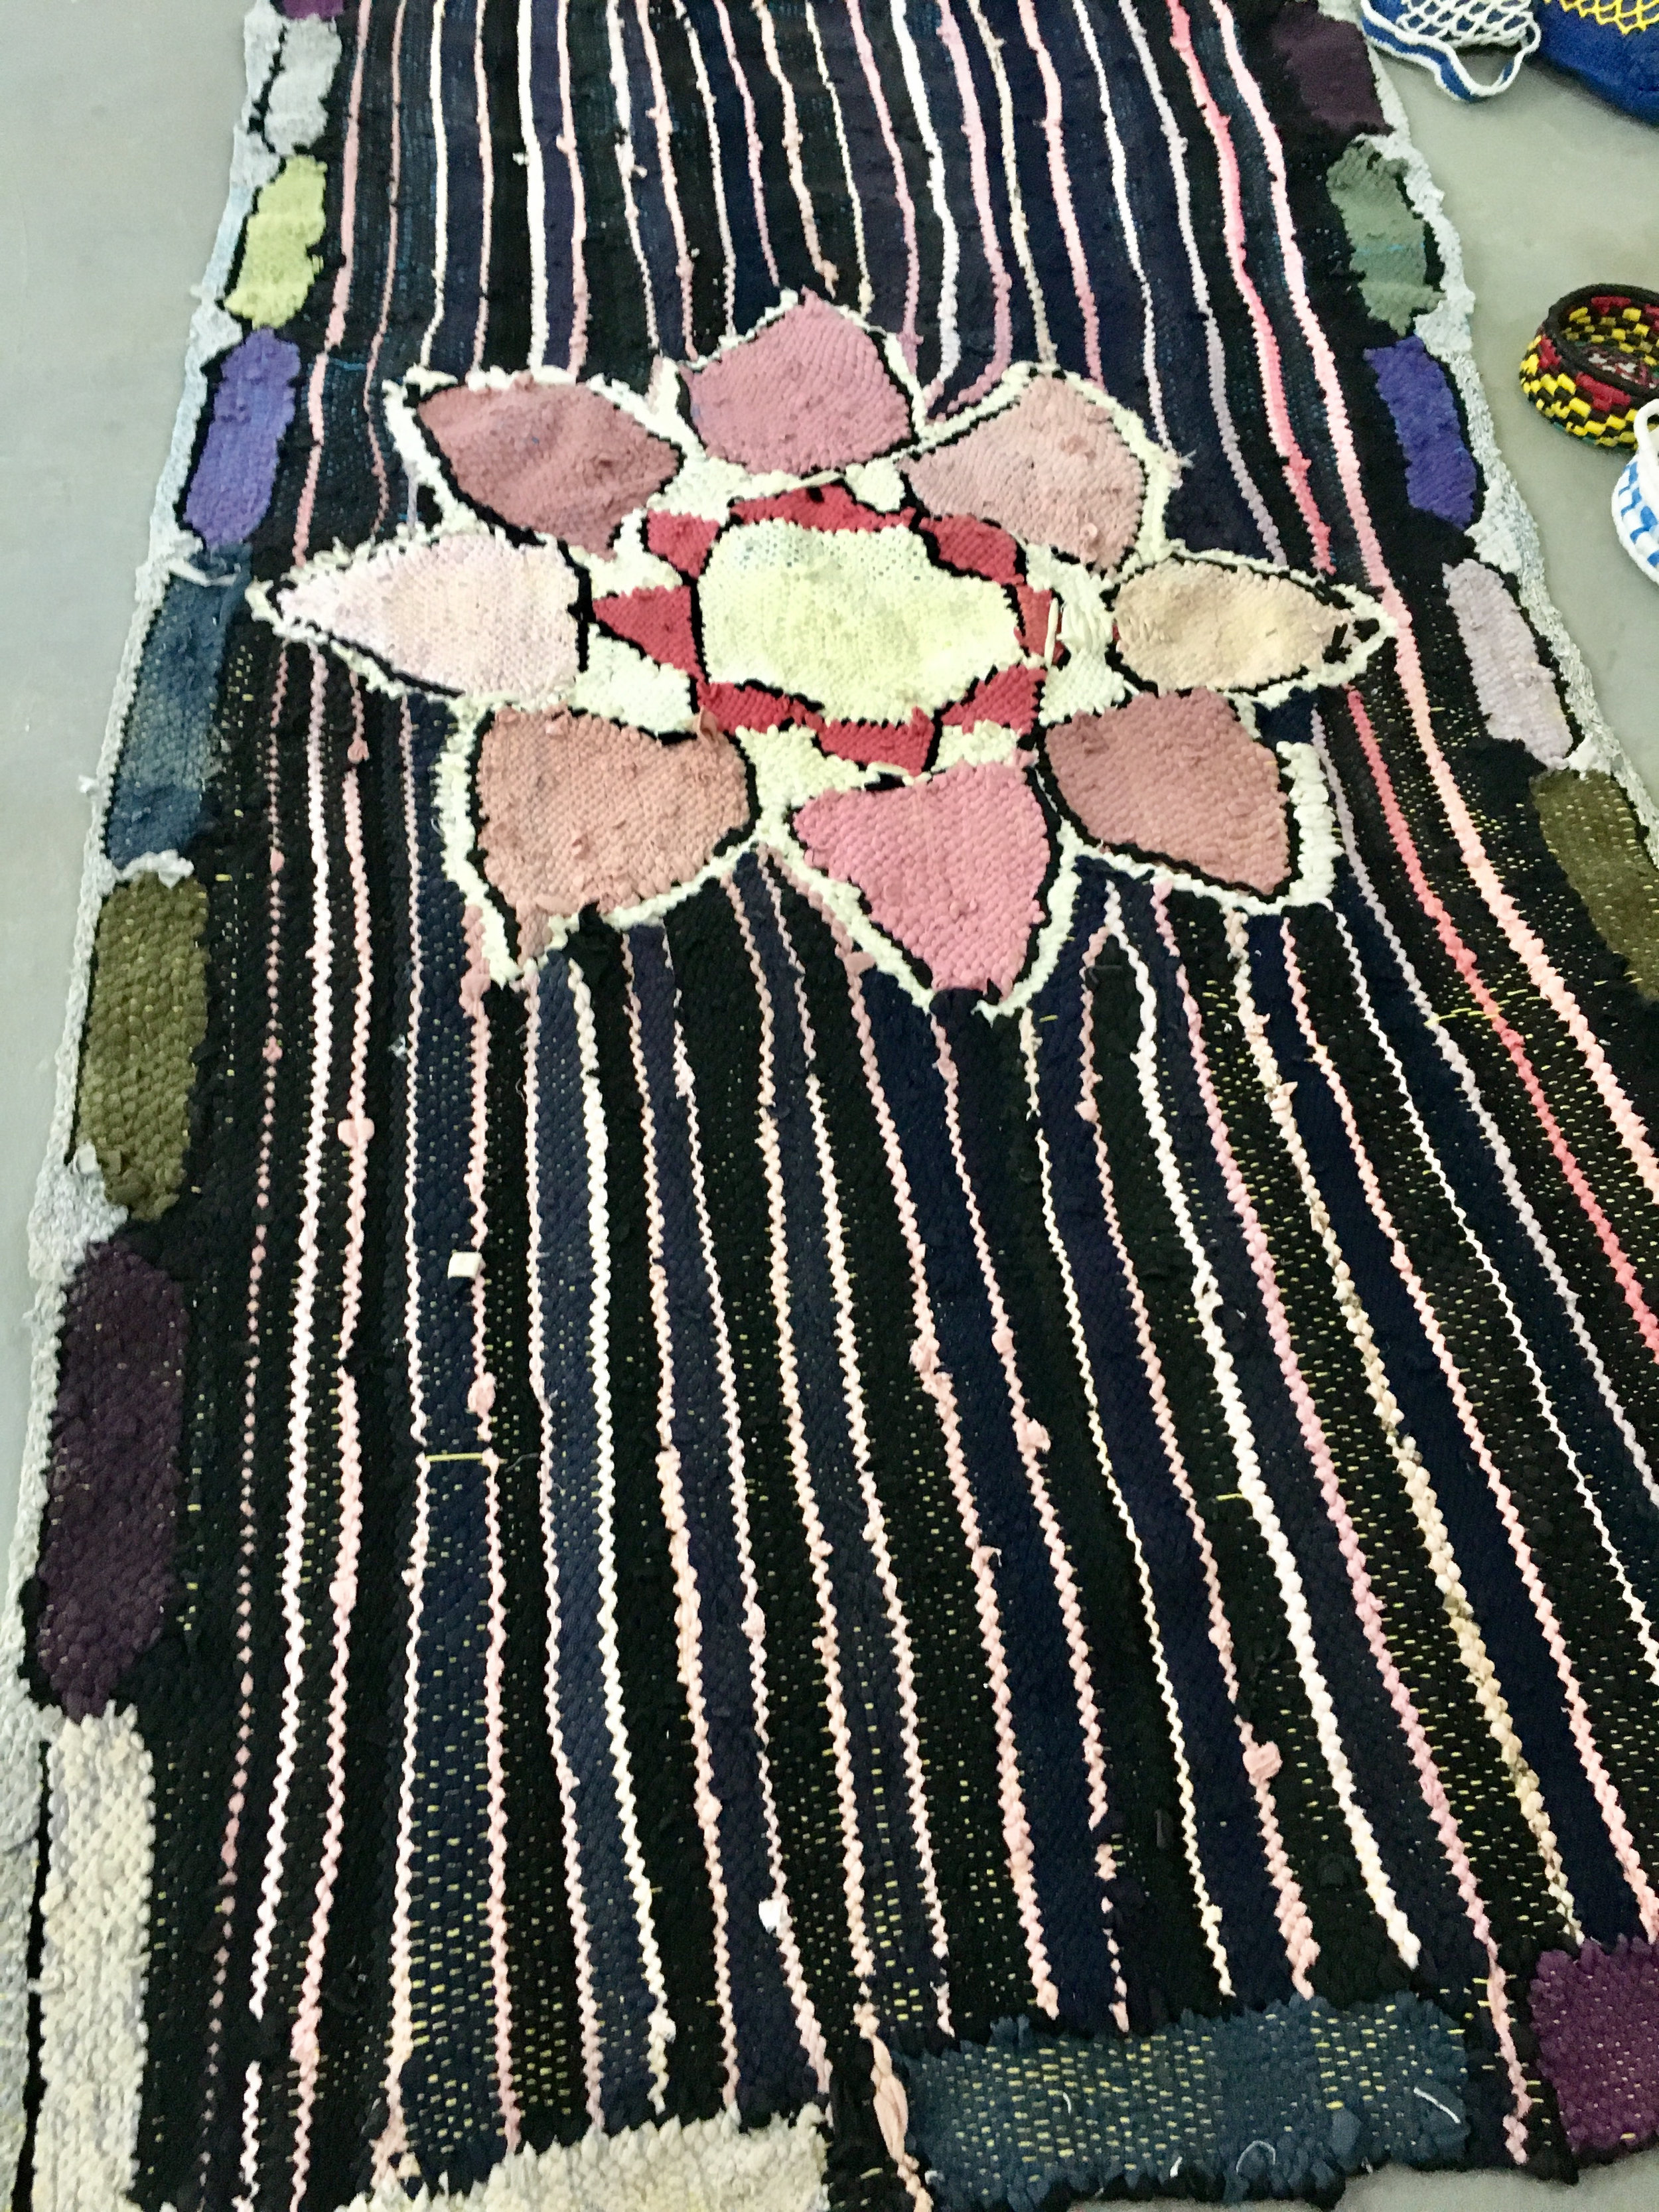 Rug making from recycled clothes UN Women